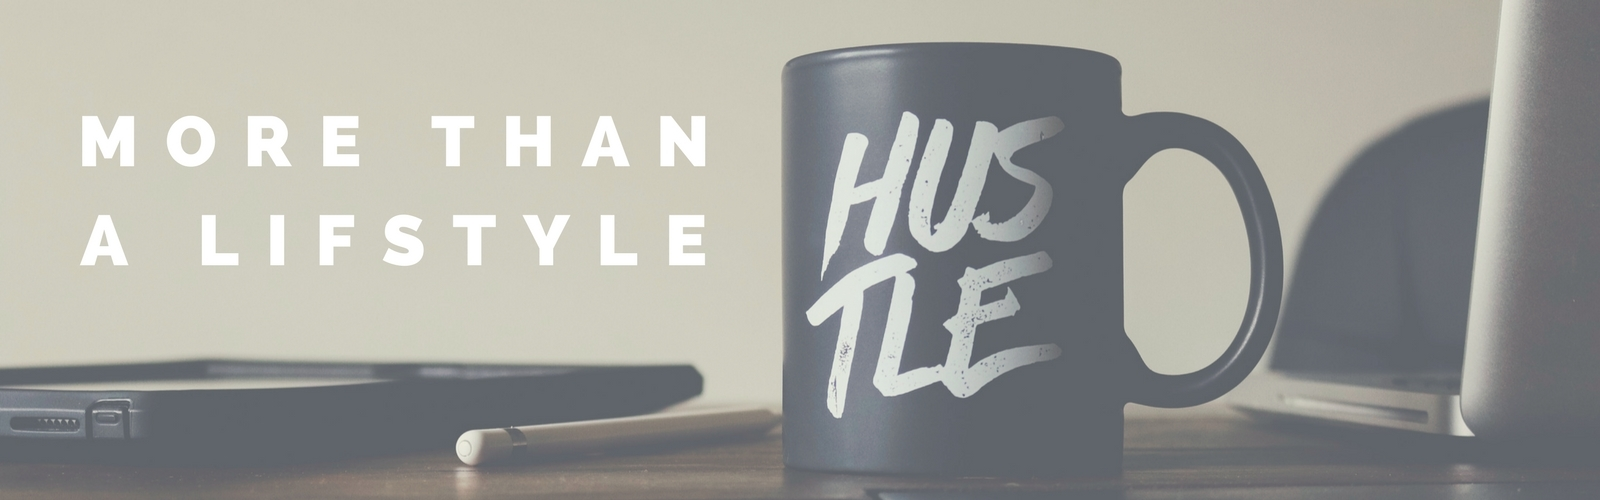 Hustle Tees Co. Store